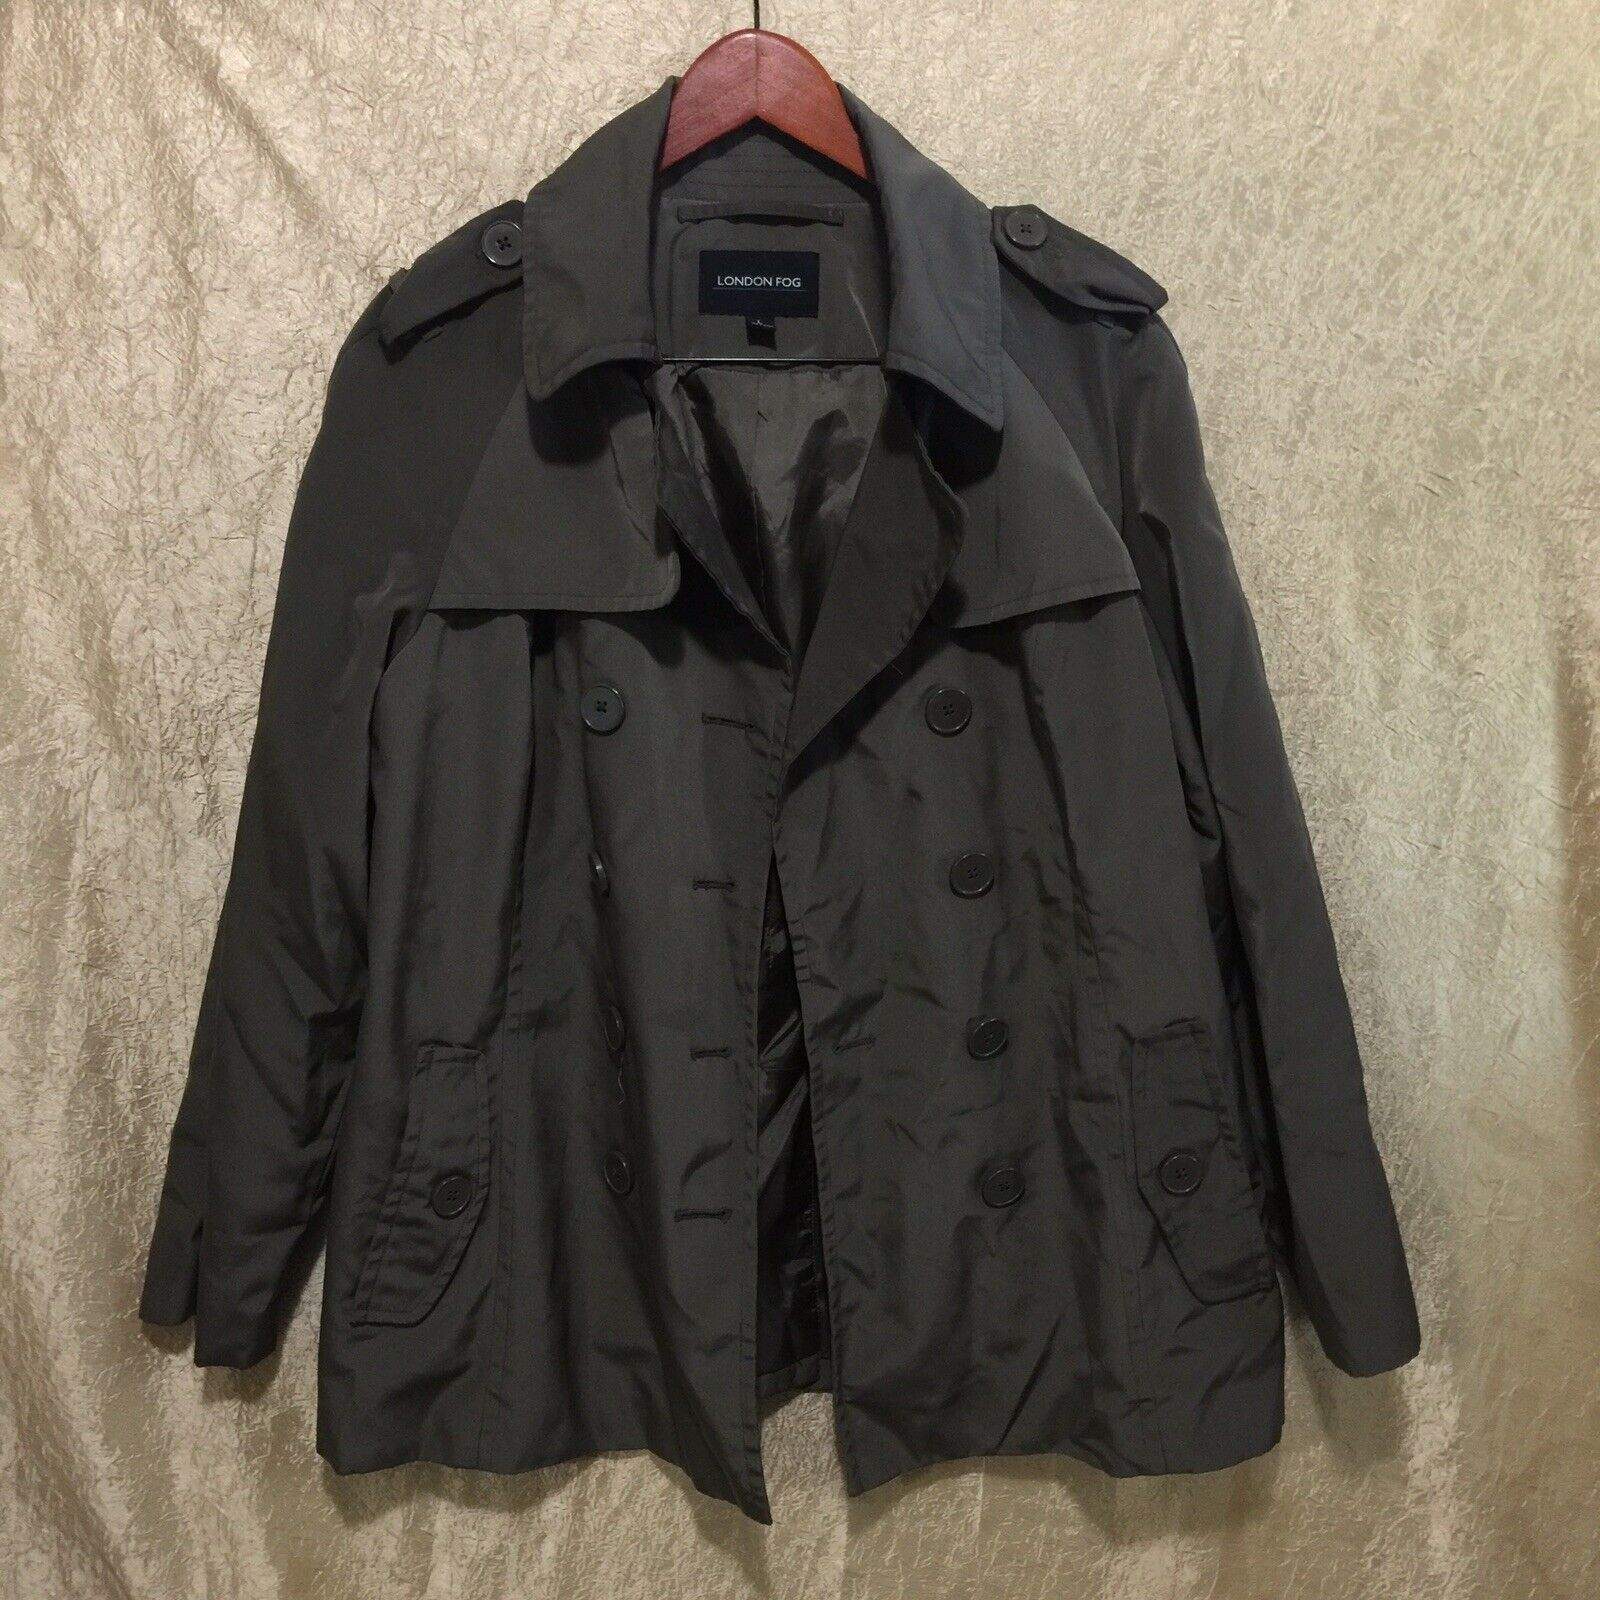 London Fog Double-Breasted Trench Coat Lined Oliv… - image 1